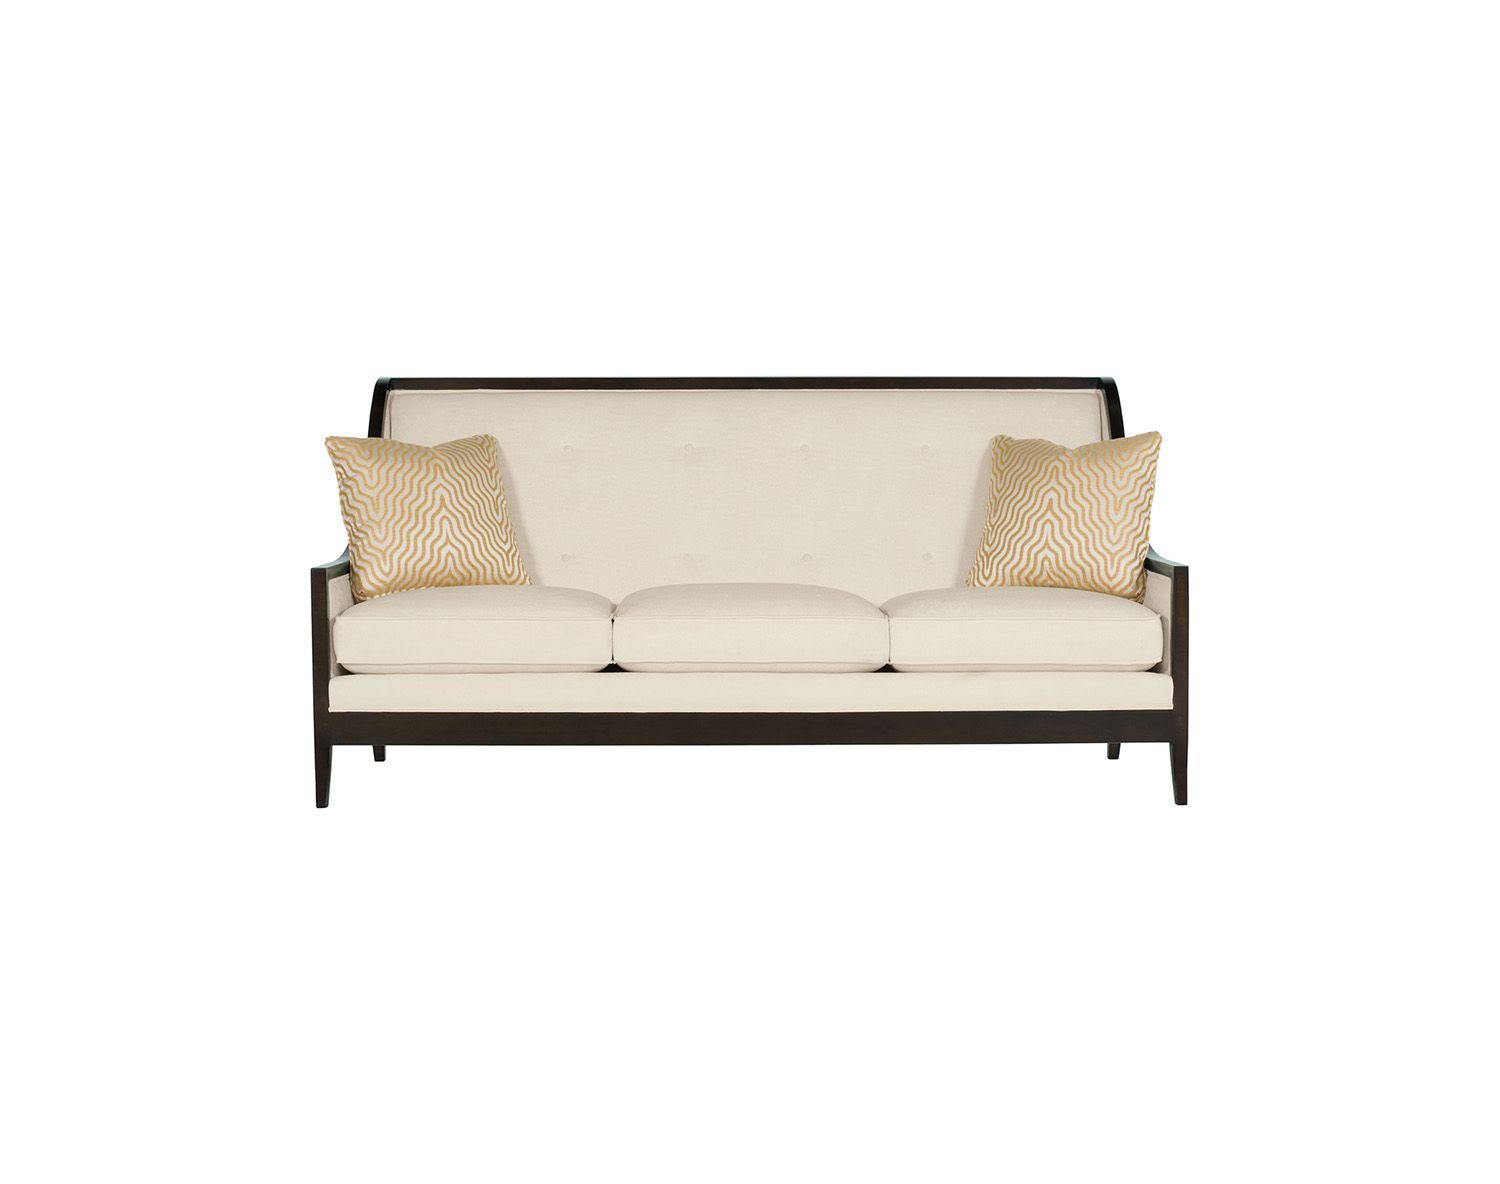 Bernhardt henderson sofa set collier 39 s furniture expo for Bernhardt furniture